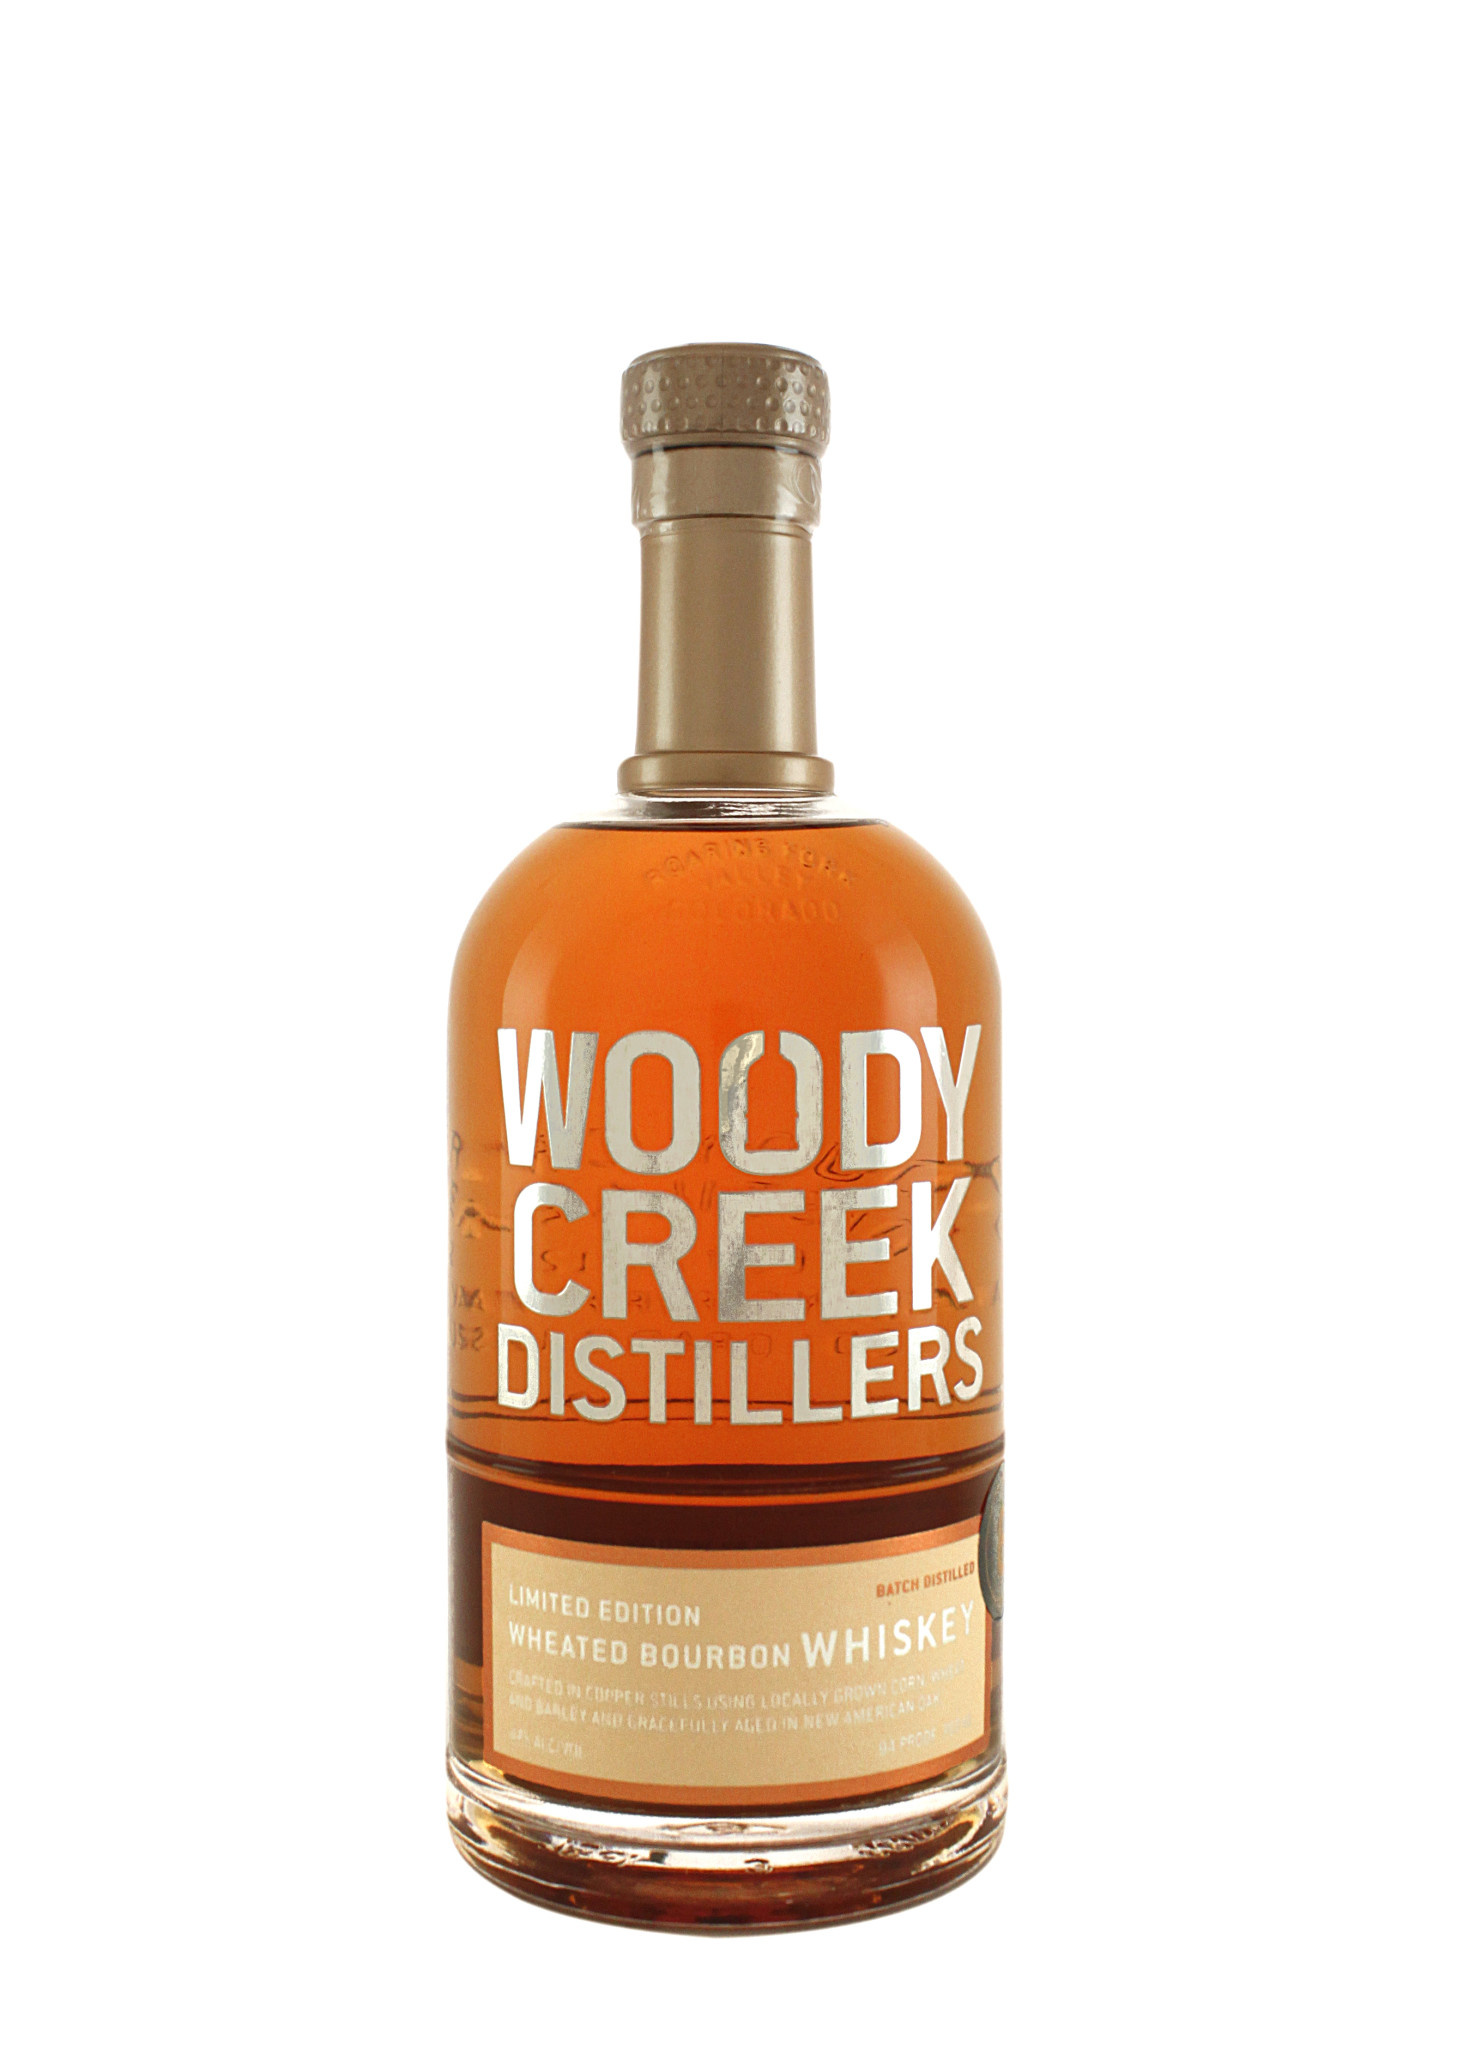 Woody Creek Wheated Bourbon Whiskey, Basalt, Colorado--May's Spirit of the Month!